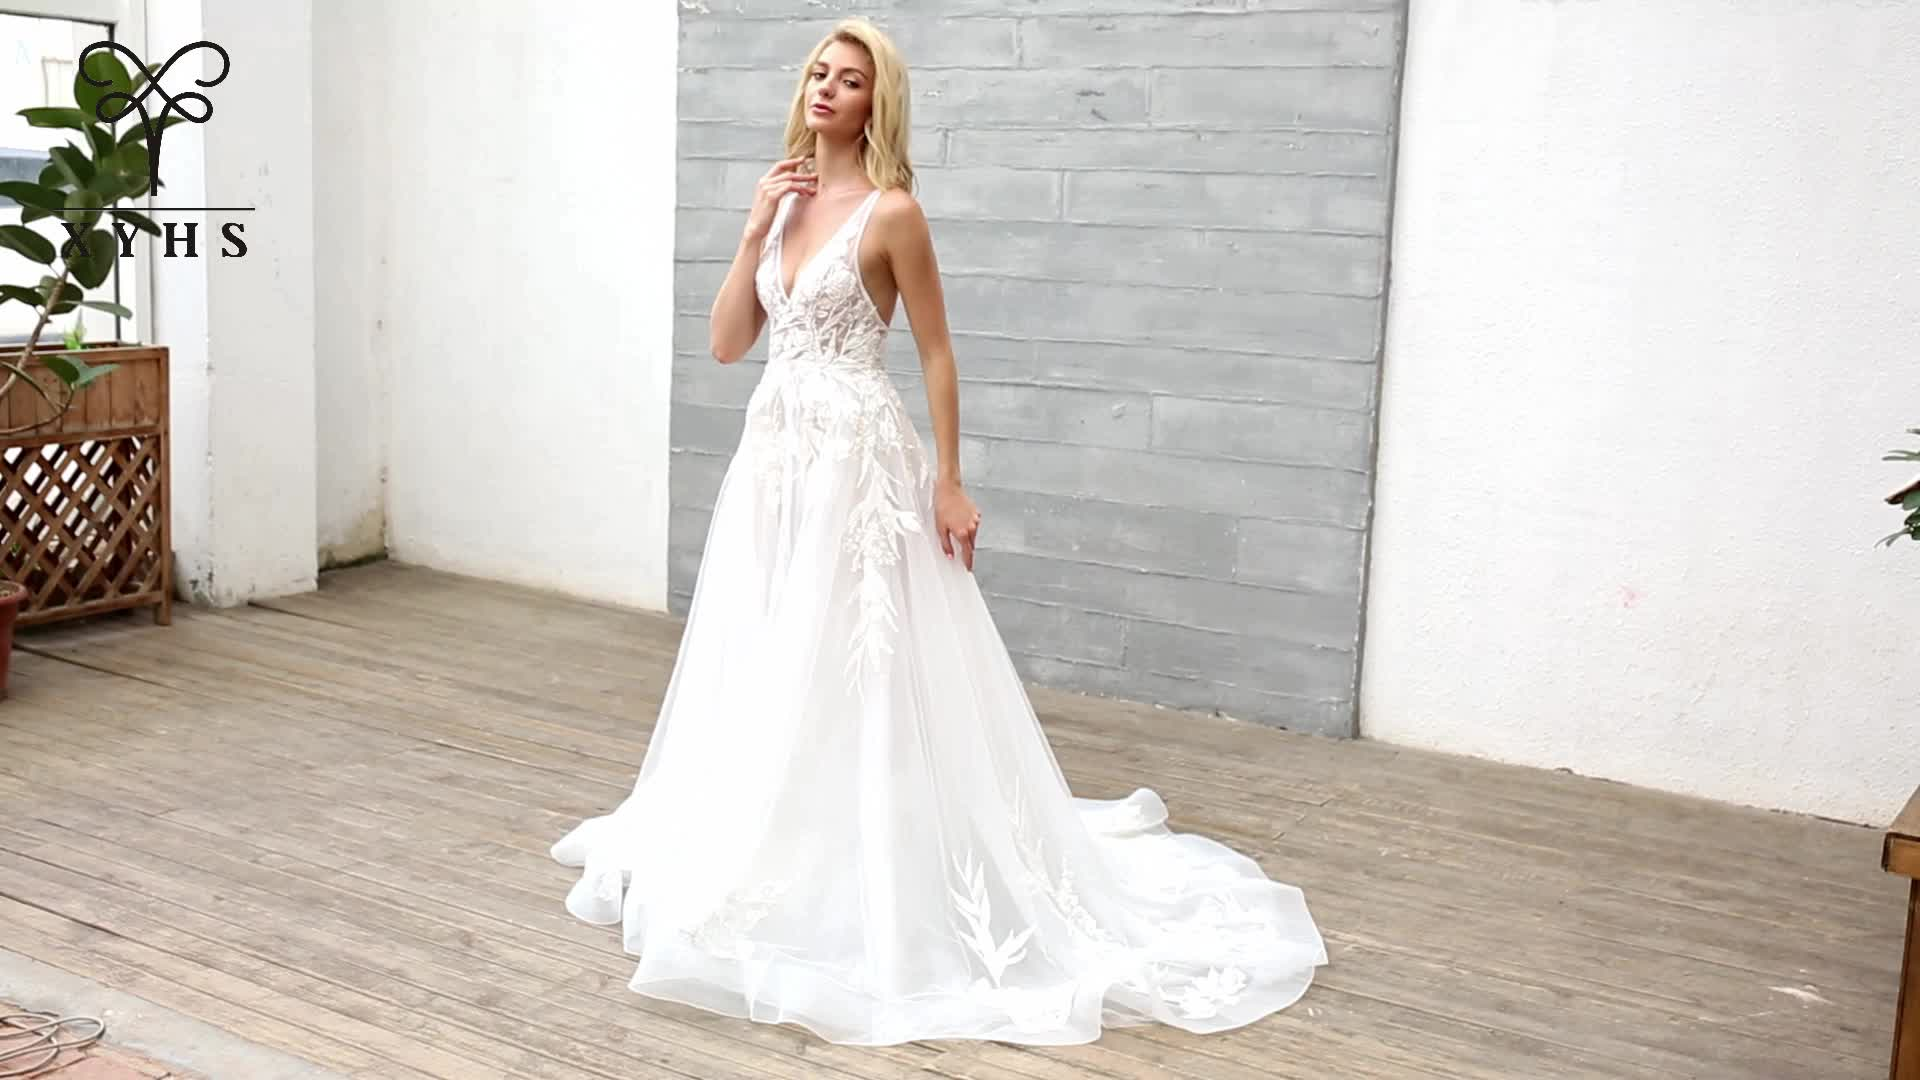 Hot sale A line wedding dress 2019 deep v neck sleeveless beading lace applique backless slip tulle bridal gown